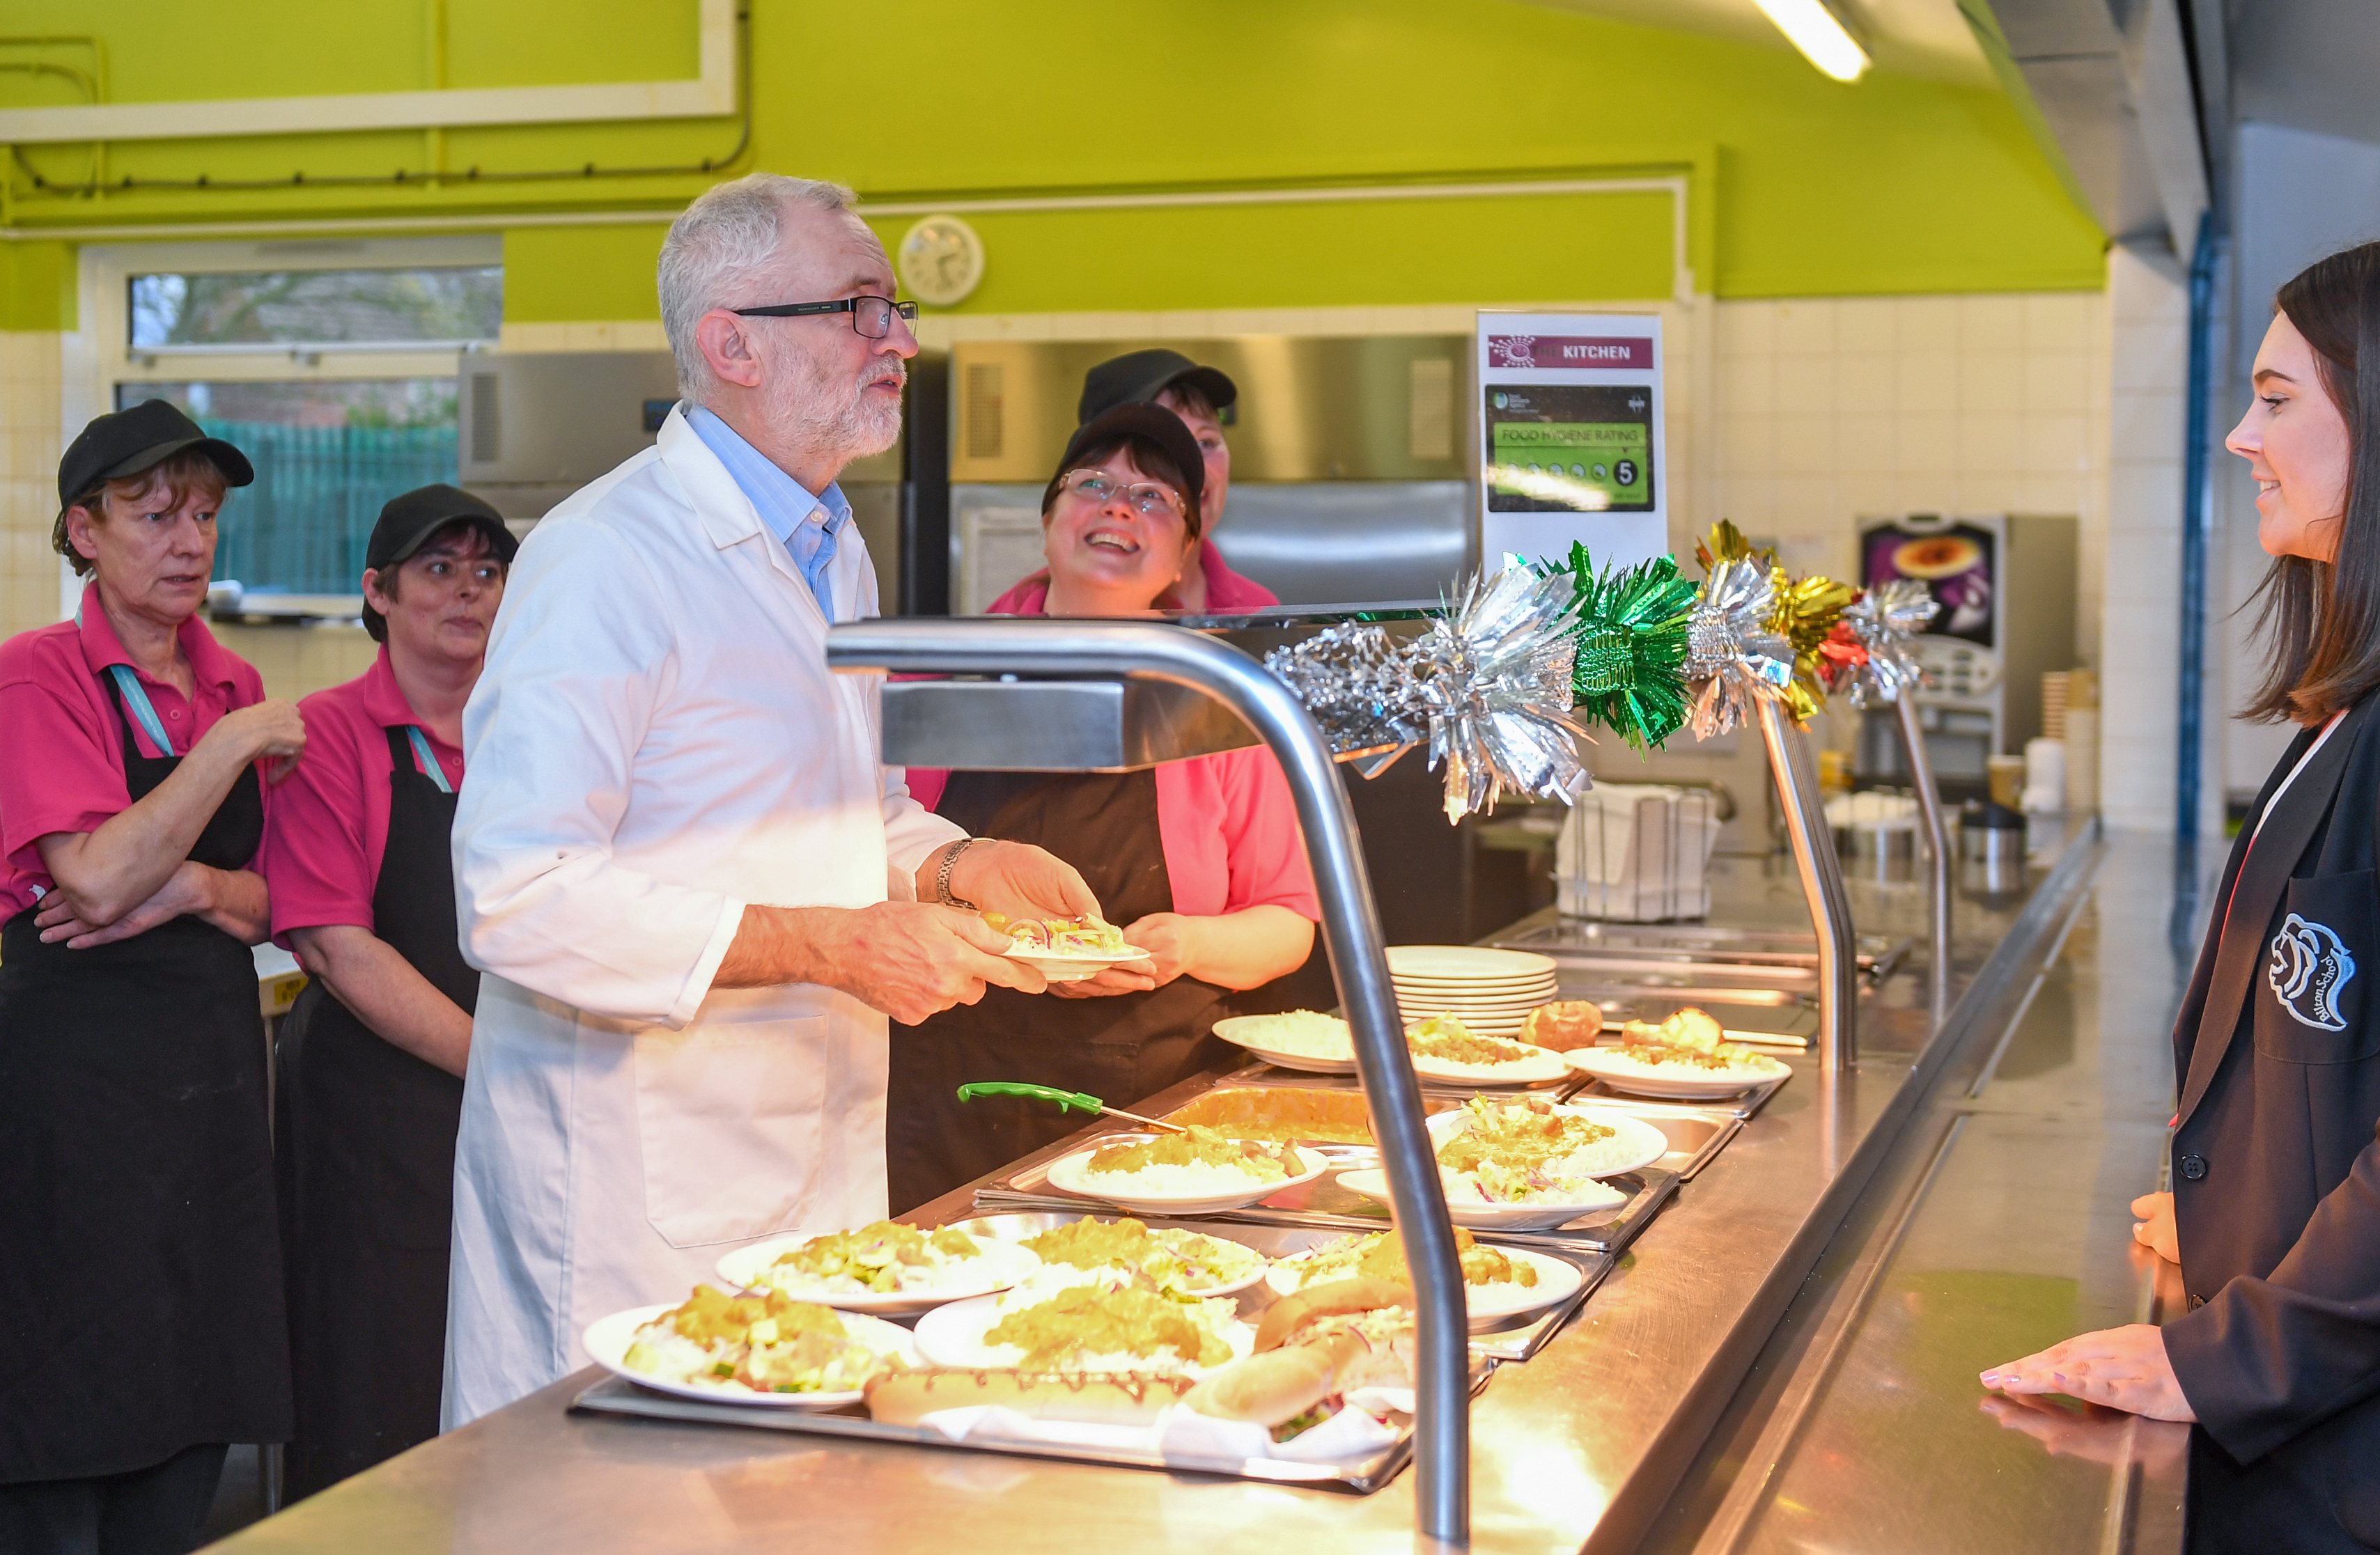 Labour leader Jeremy Corbyn serves students and teachers their school dinners at Bilton High School in Rugby, while on the General Election campaign trail.